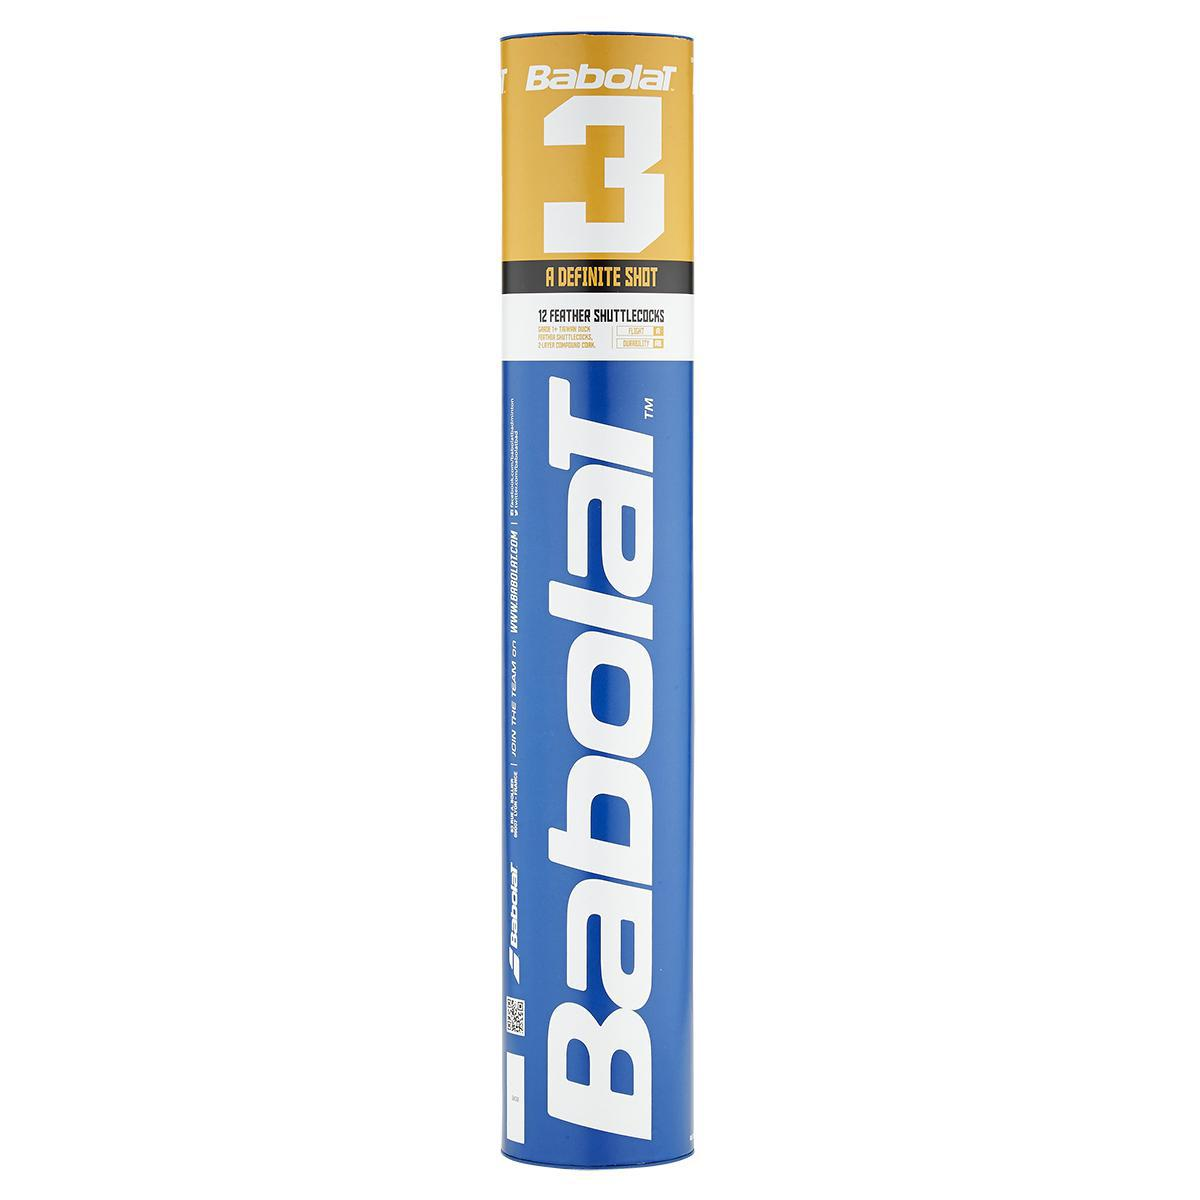 Babolat 3 Feather Badminton Shuttles